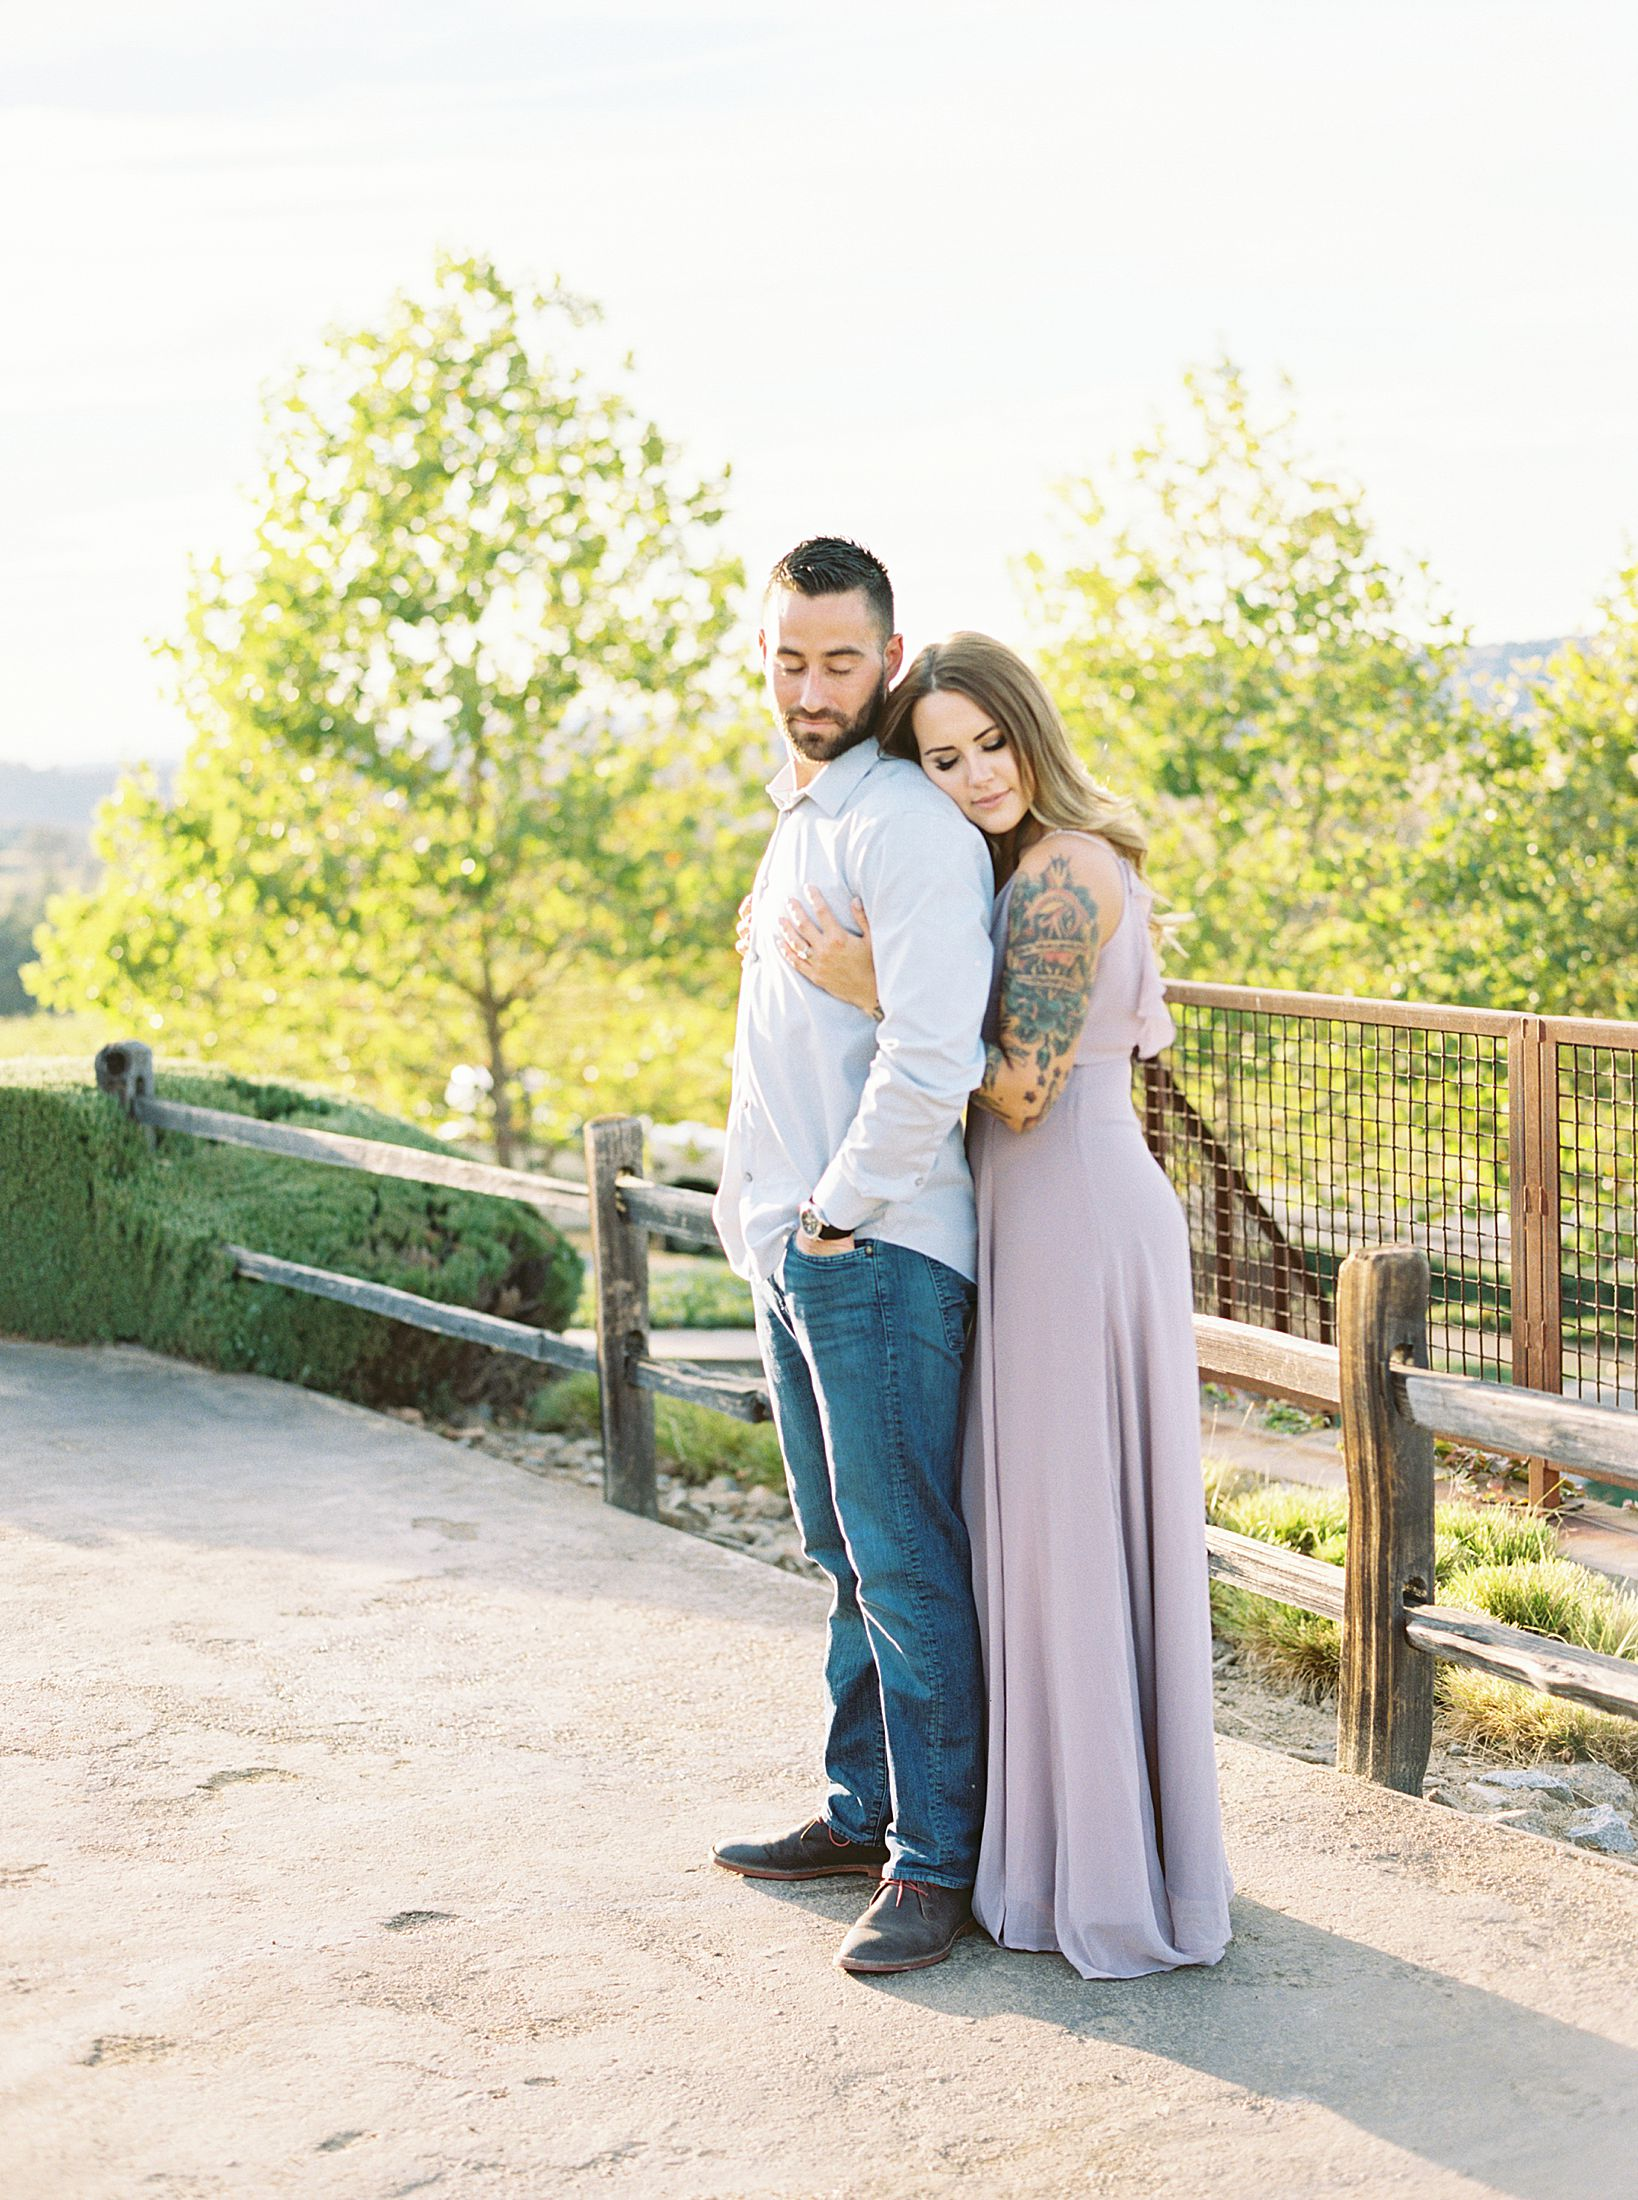 Helwig Winery Engagement Session - Steffanie and Rich - Jenn Robirds Events - Ashley Baumgartner - Sacramento Wedding Photographer - Private Estate Wedding Photographer - Helwig WInery Wedding_0097.jpg